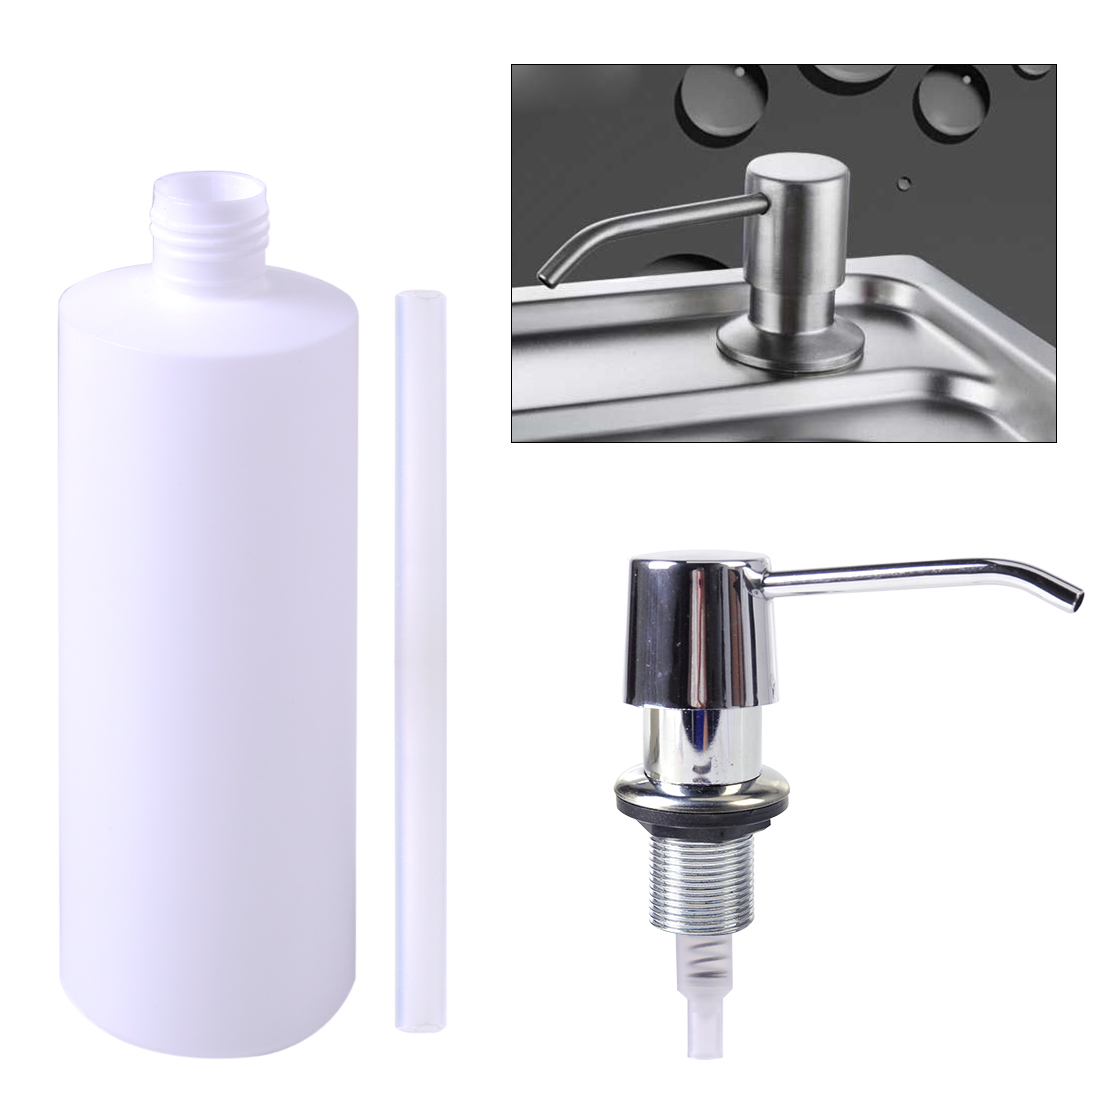 Bathroom sink liquid soap holder dispenser plastic kitchen for Liquid soap dispenser for bathroom